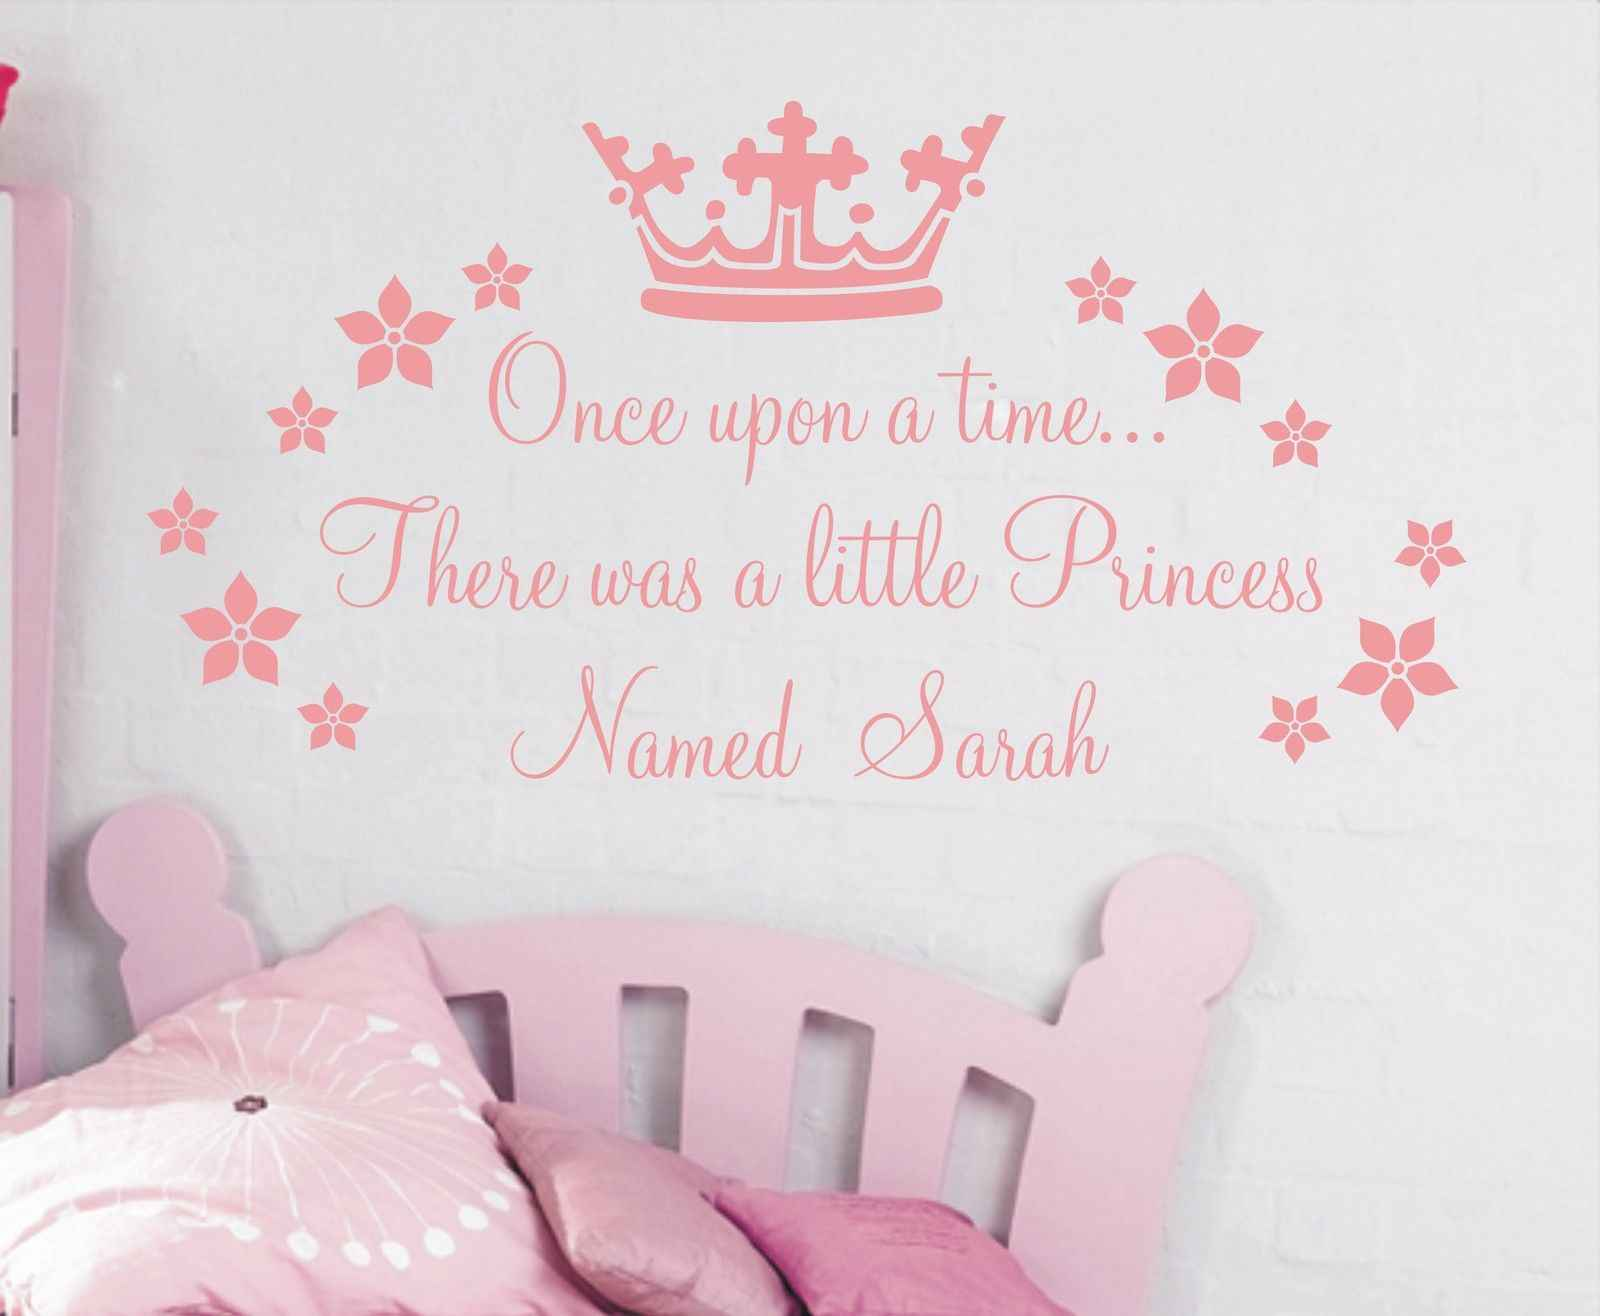 Once Upon a Time Princess Georgia Wall Sticker Decal Bed Room Art Girl//Baby